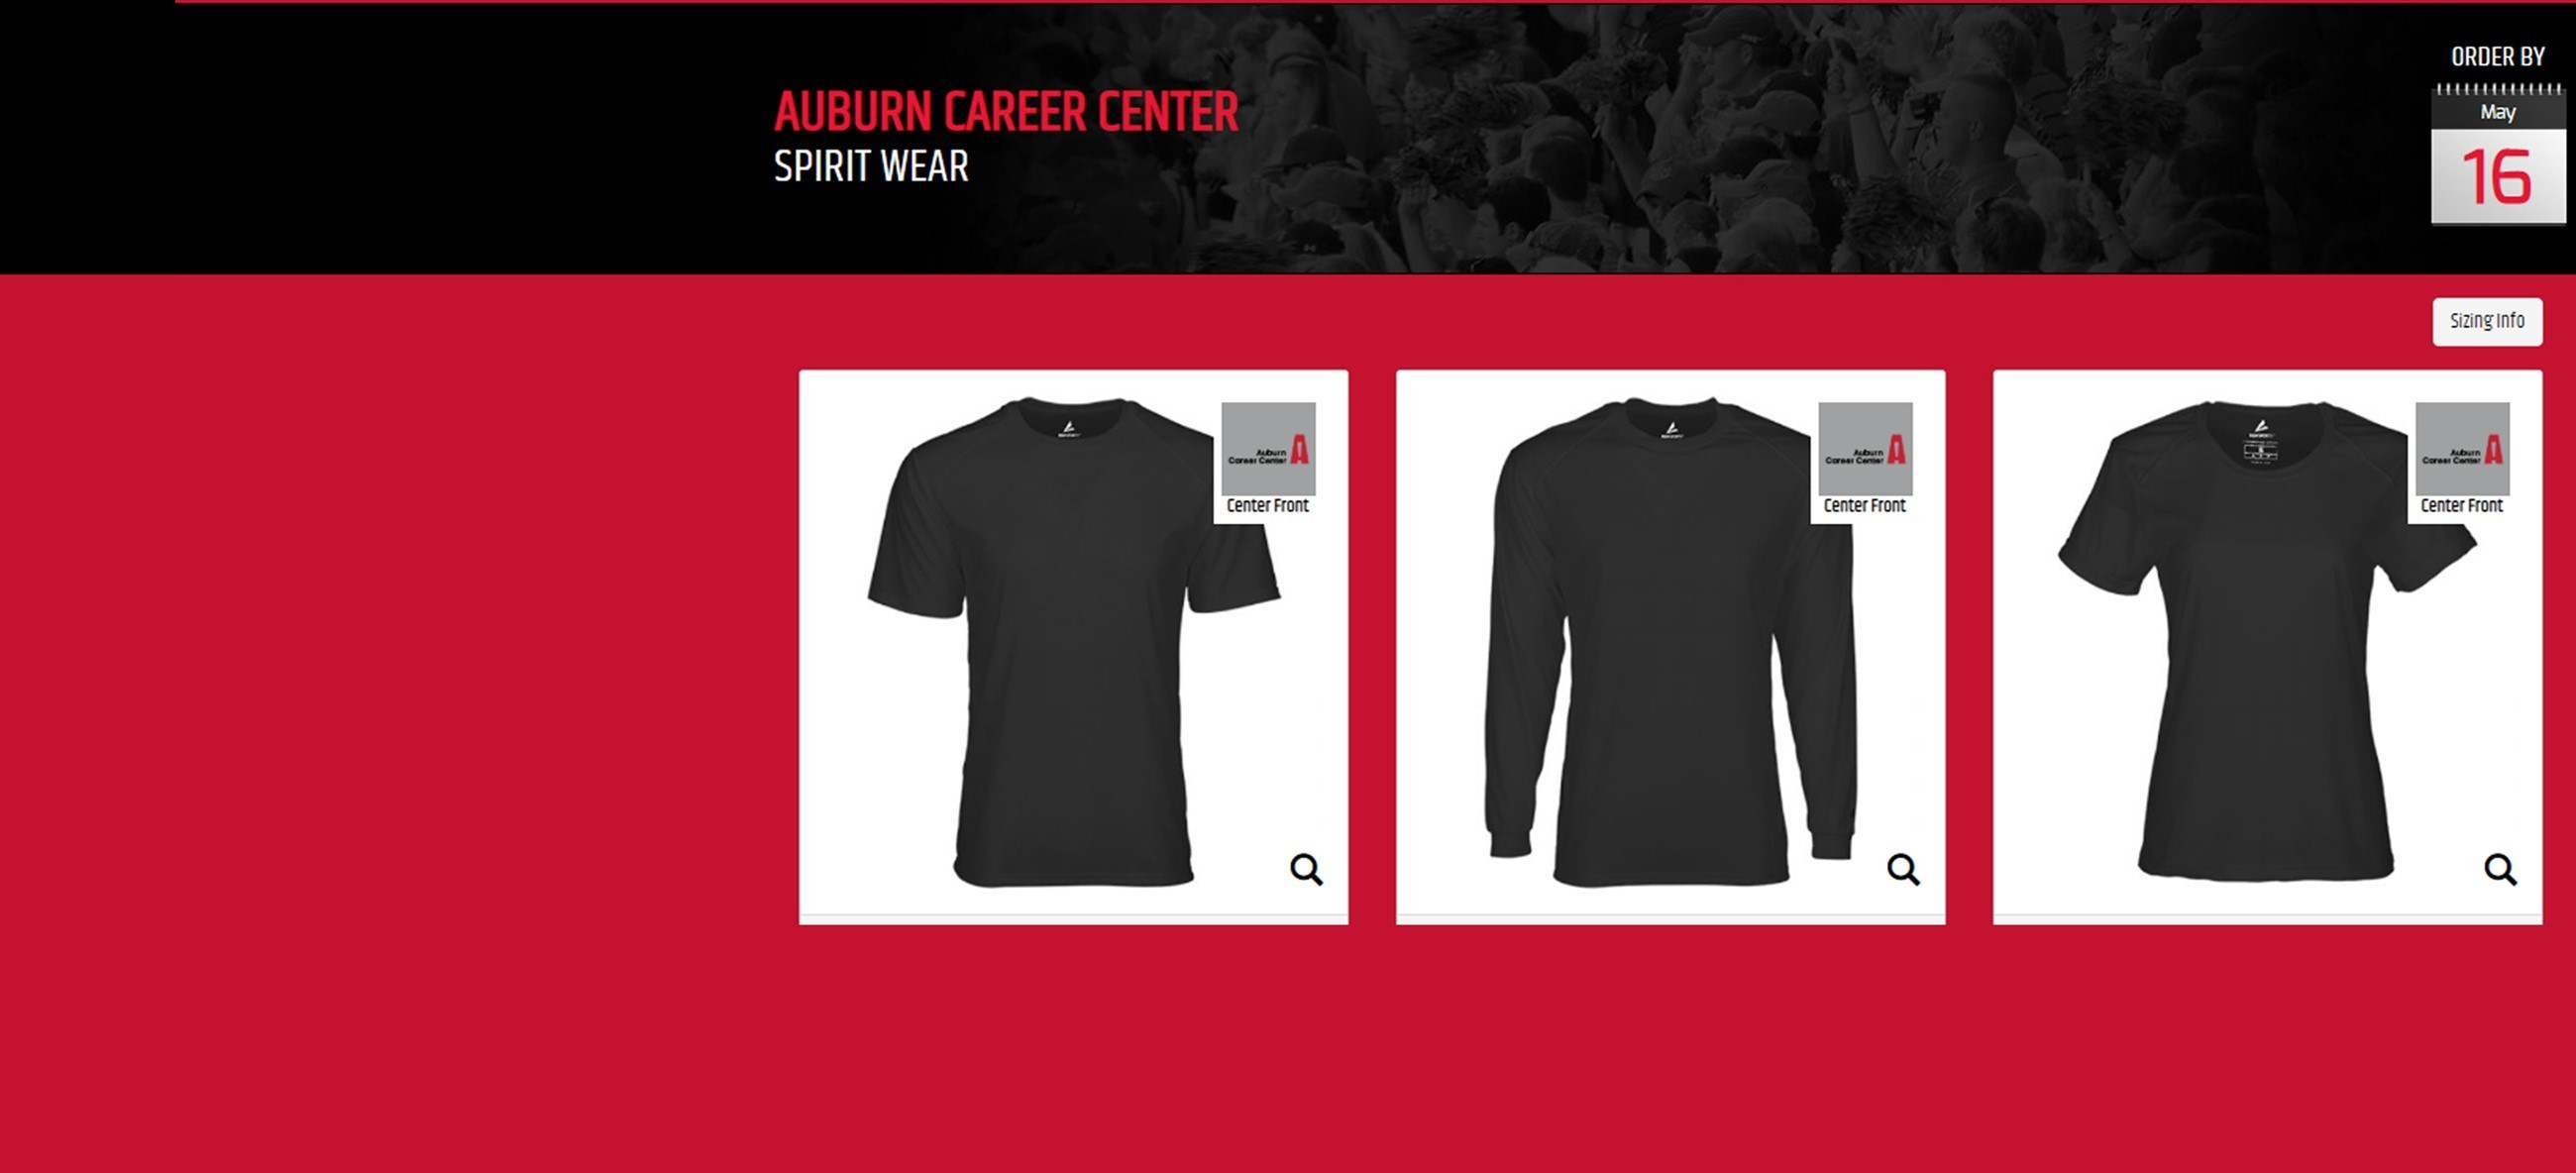 three images of shirts on red and black background